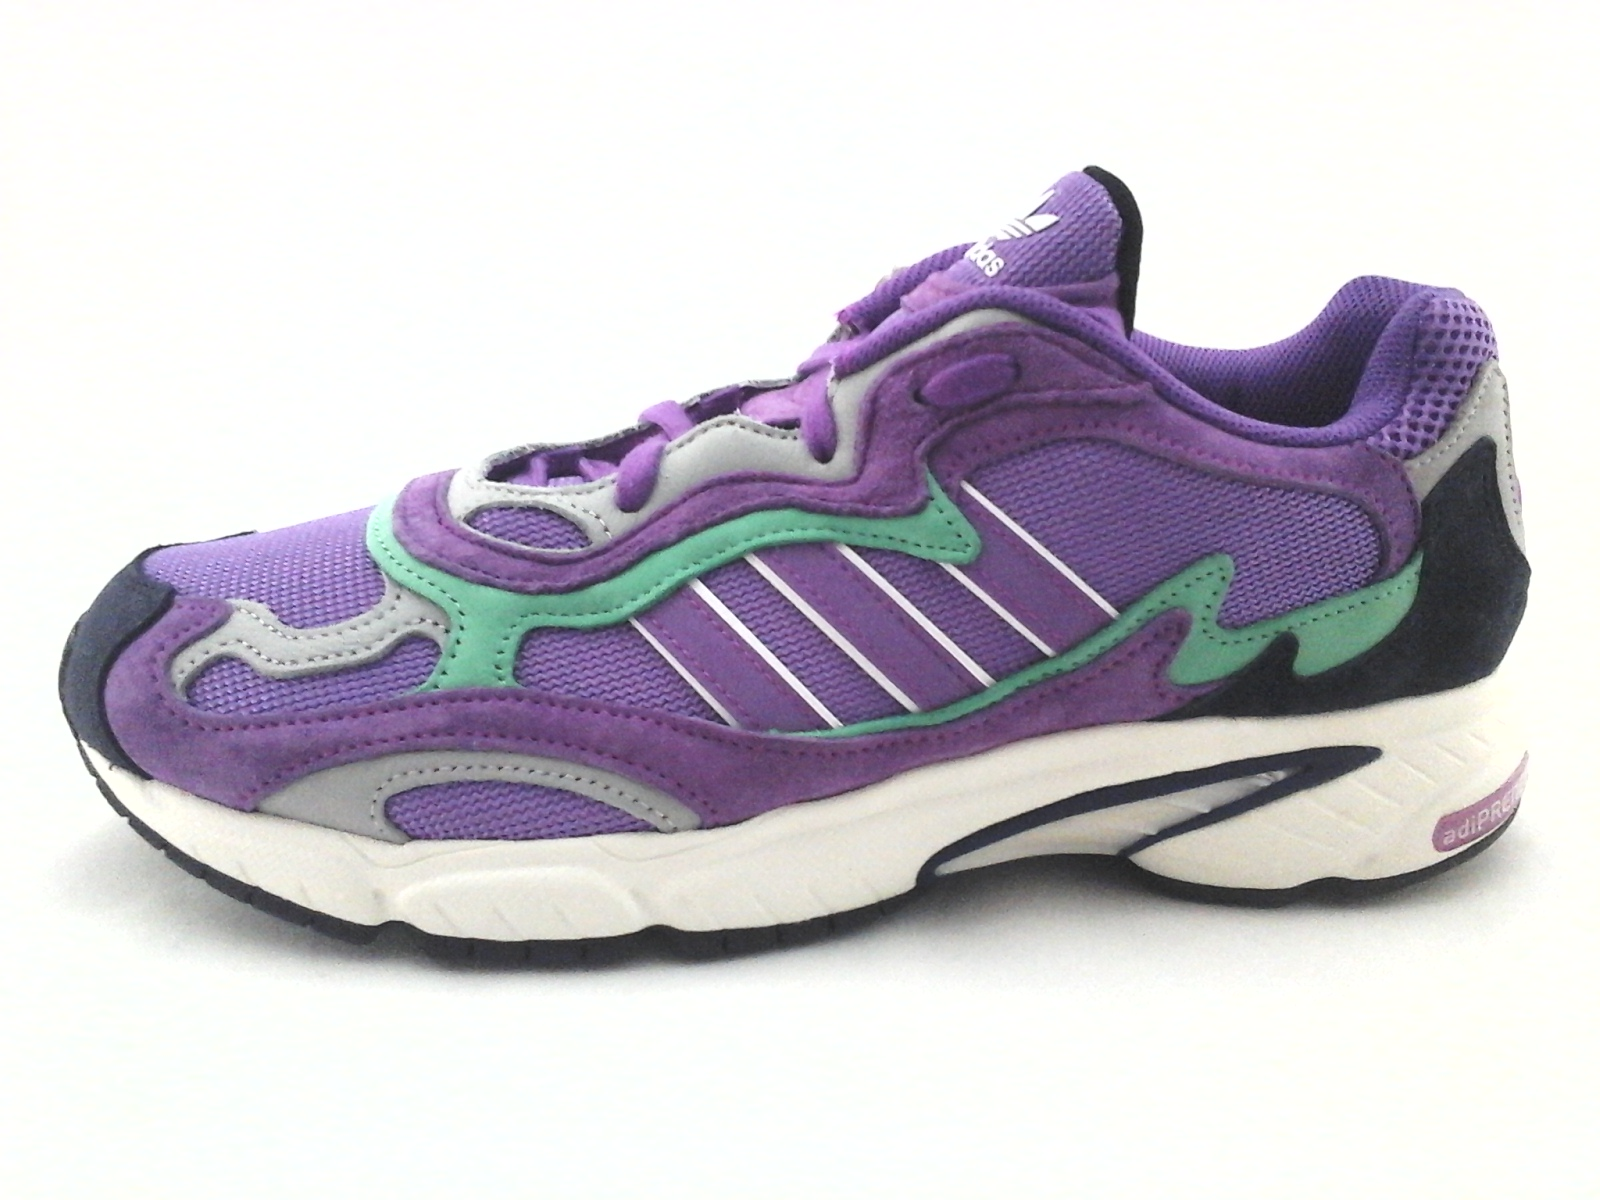 32ad80b72e8 Adidas TEMPER RUN Running Shoes Shock Purple and Green Sneakers F97208  Men s New